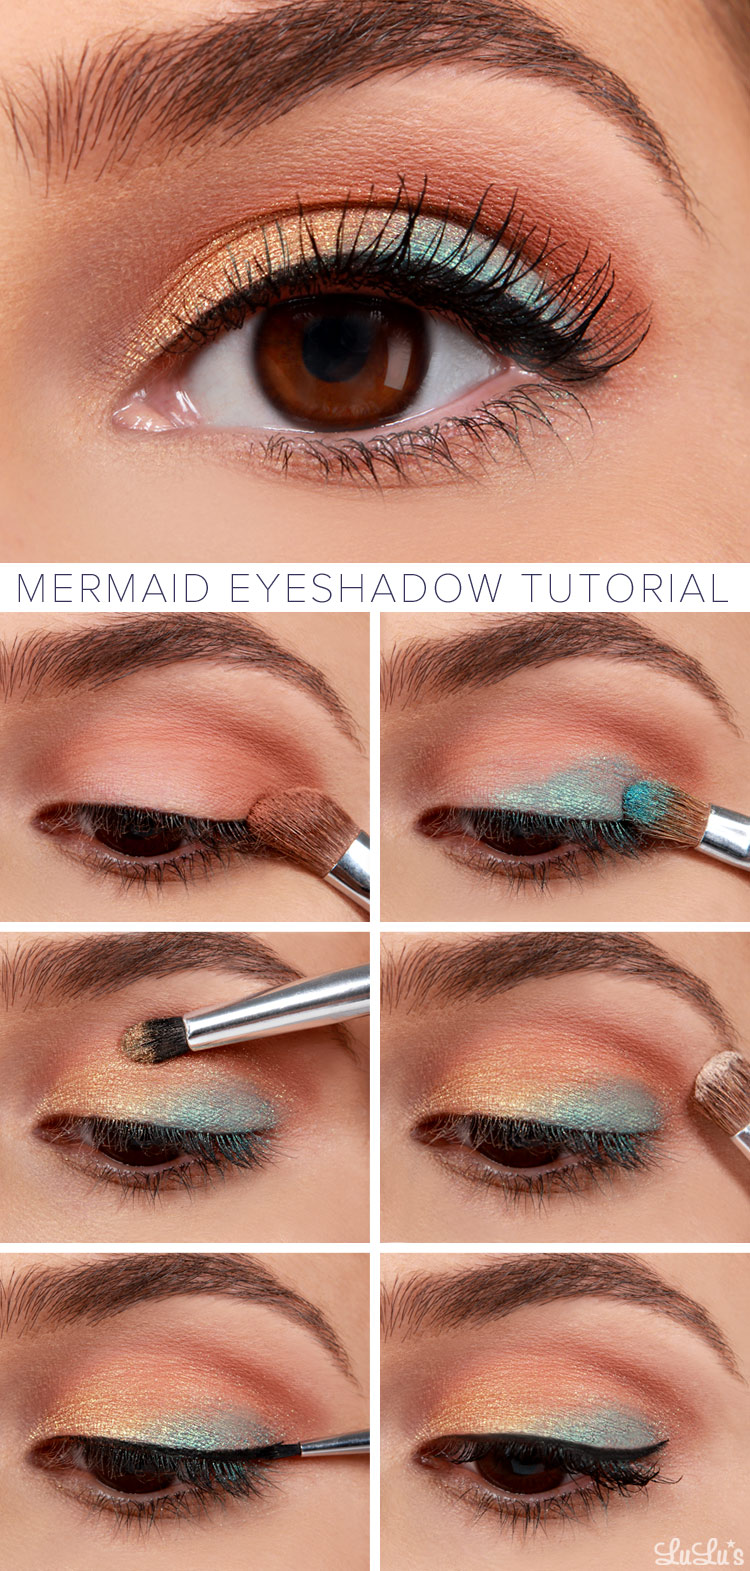 Lulus How To Mermaid Eyeshadow Makeup Tutorial Lulus Fashion Blog